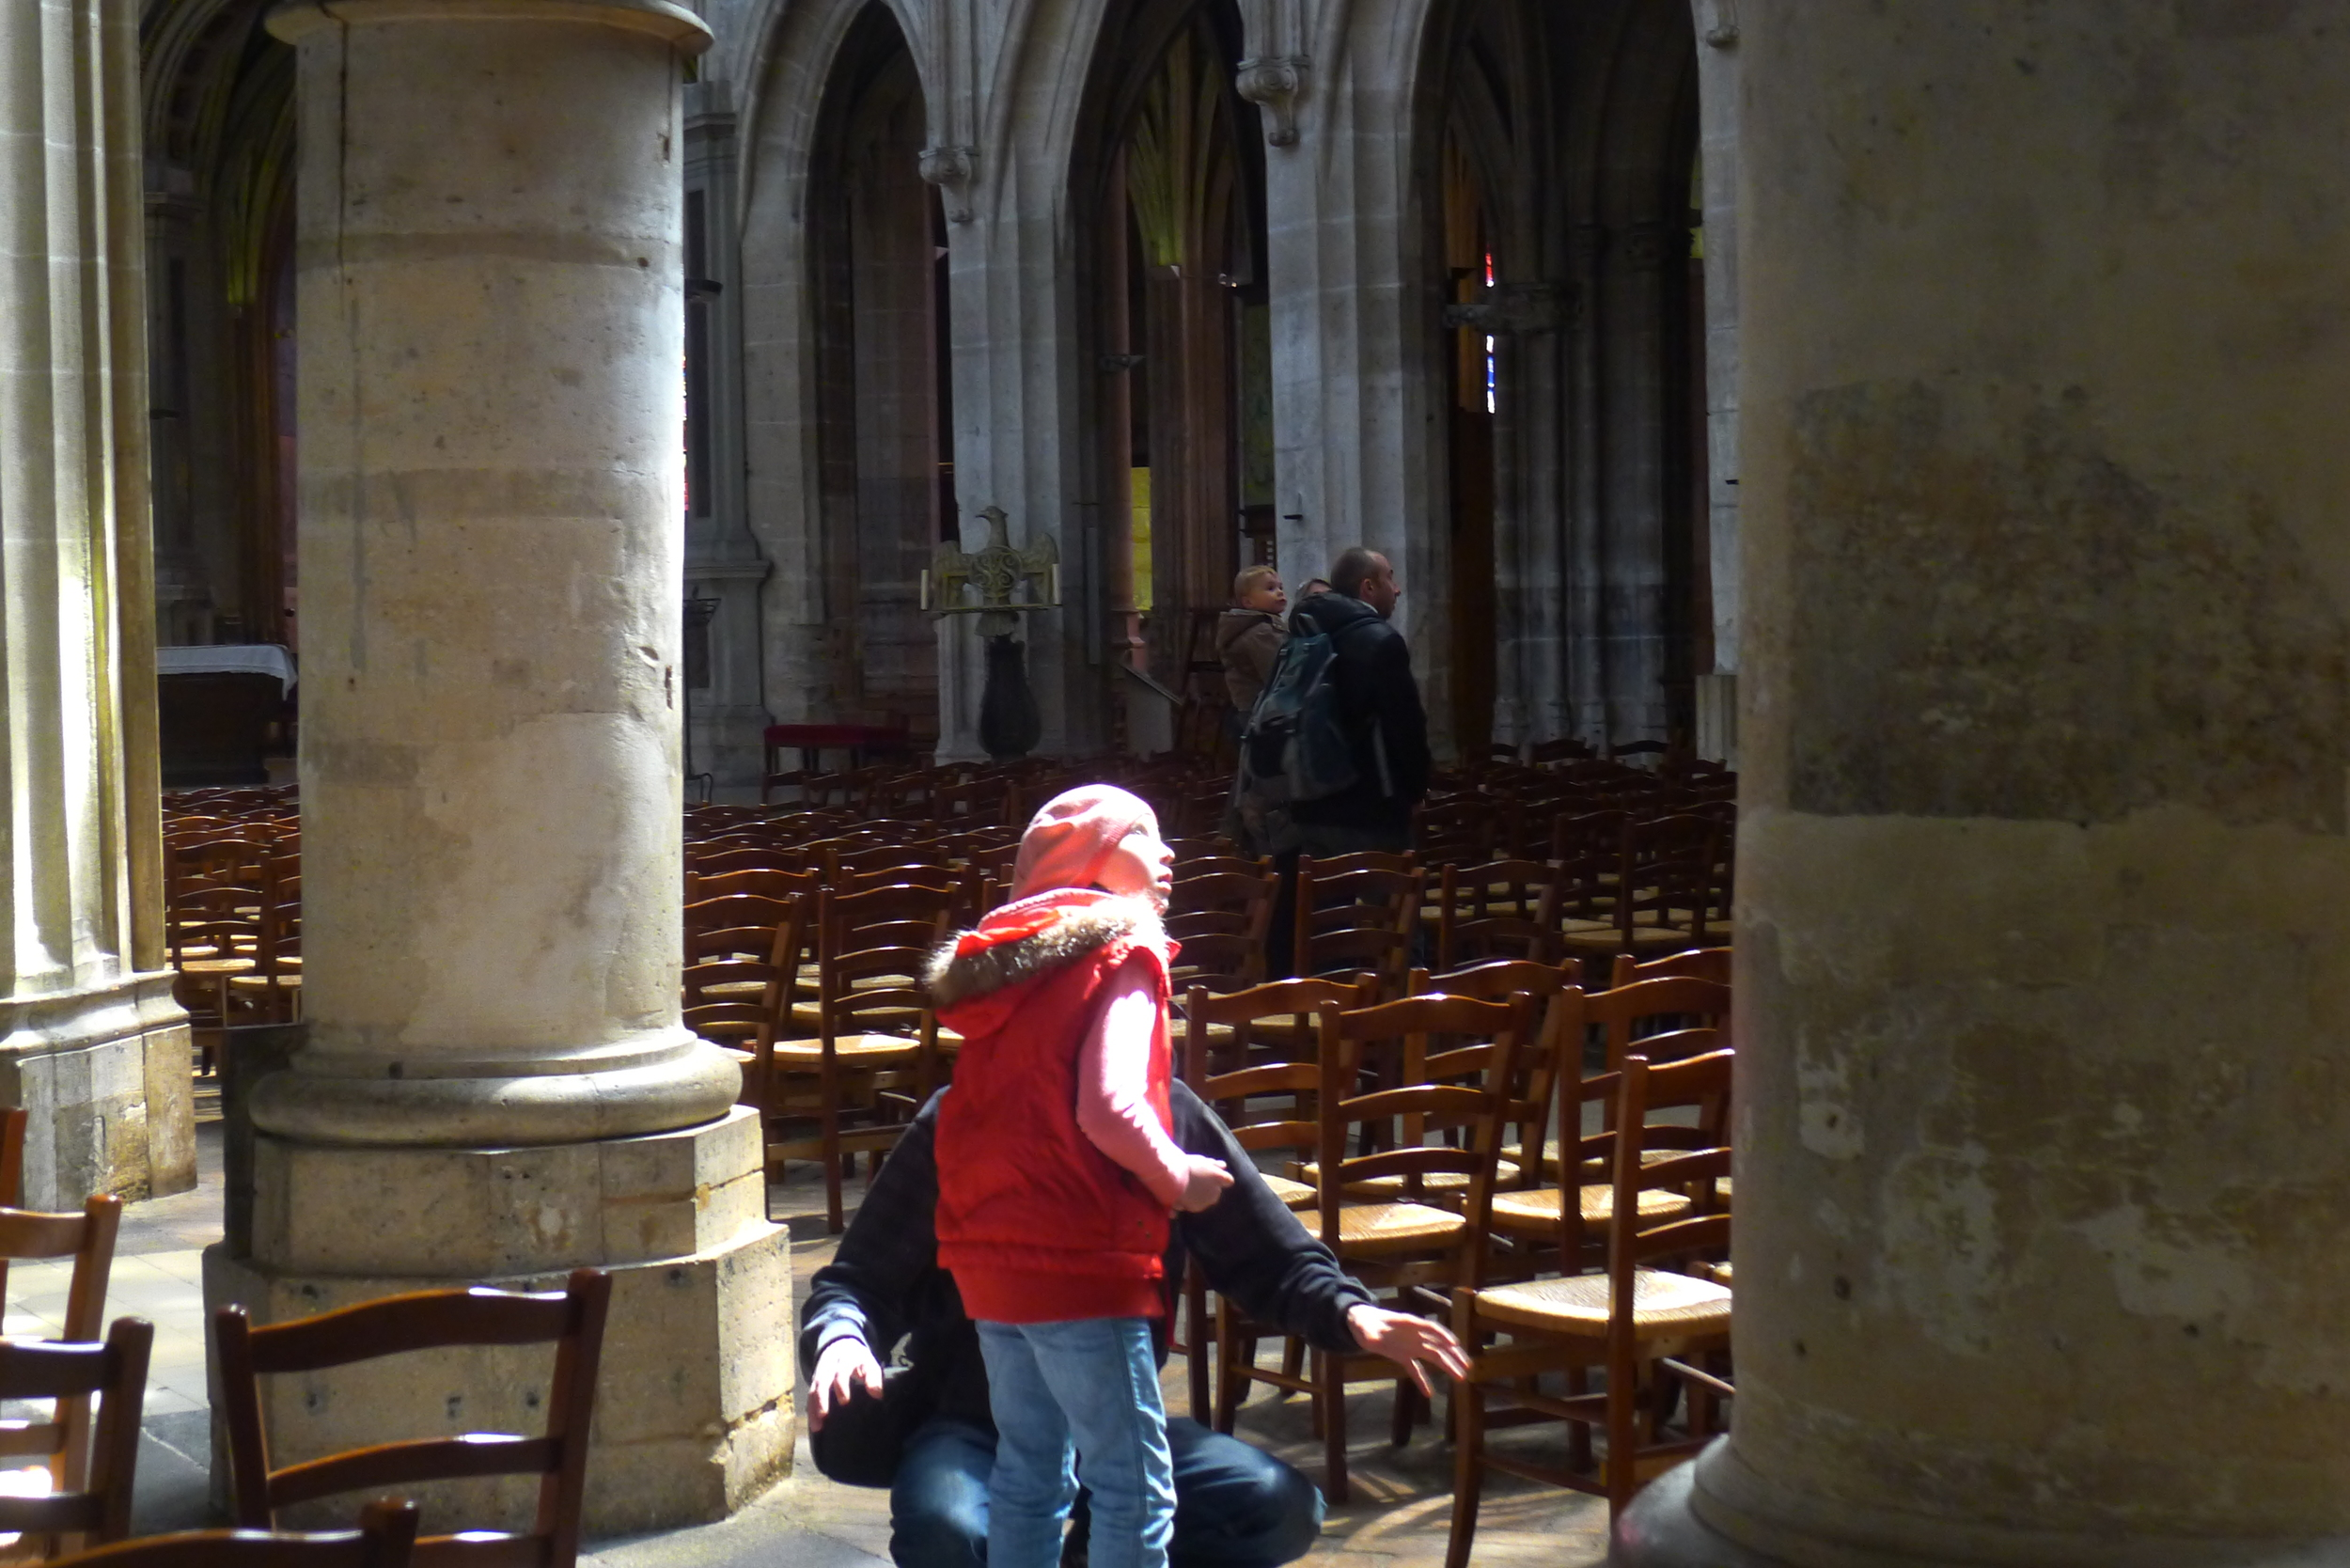 A moment of wonder in the church of St Severin